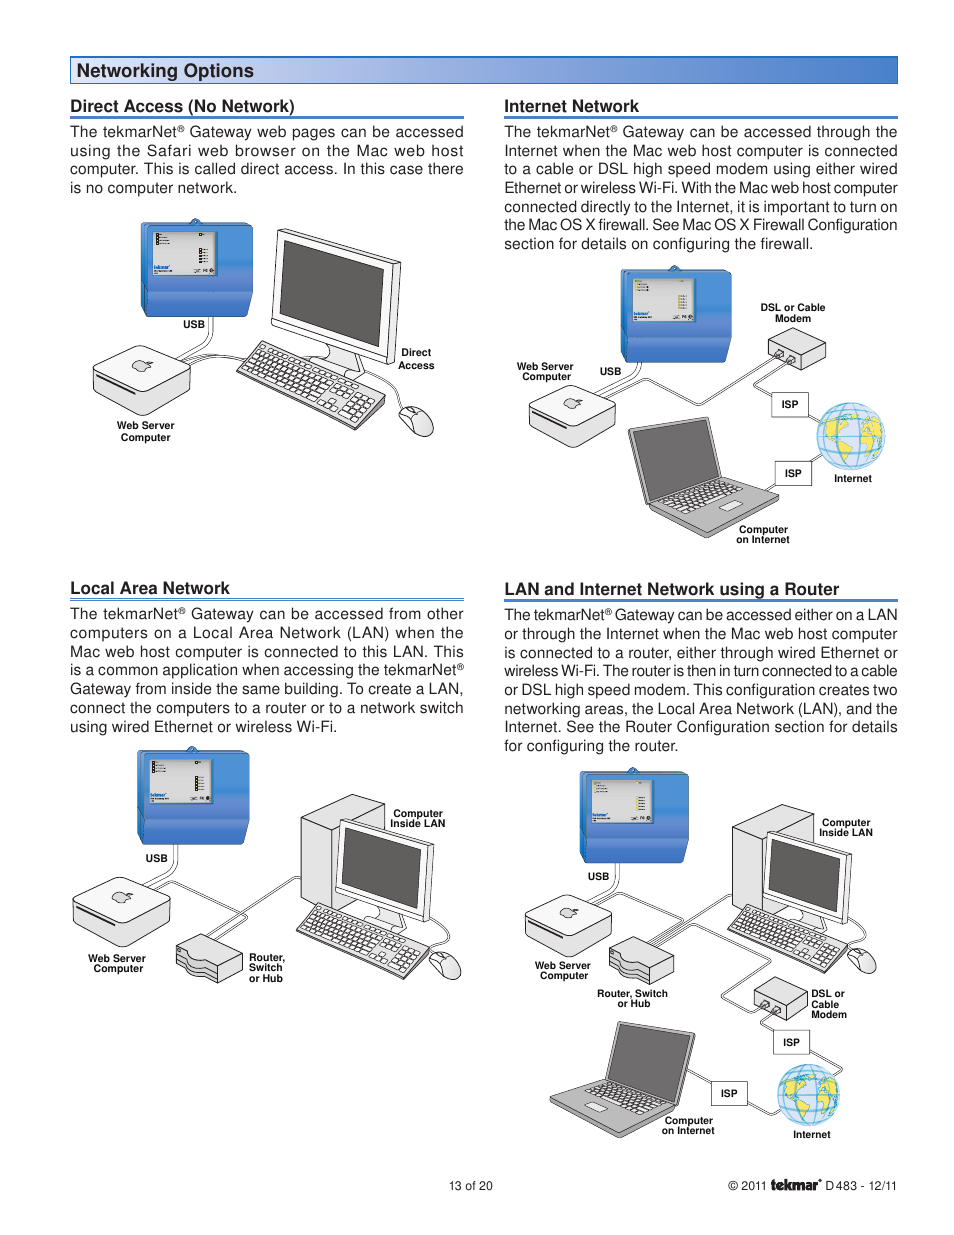 Networking options, Direct access (no network), Local area network ...